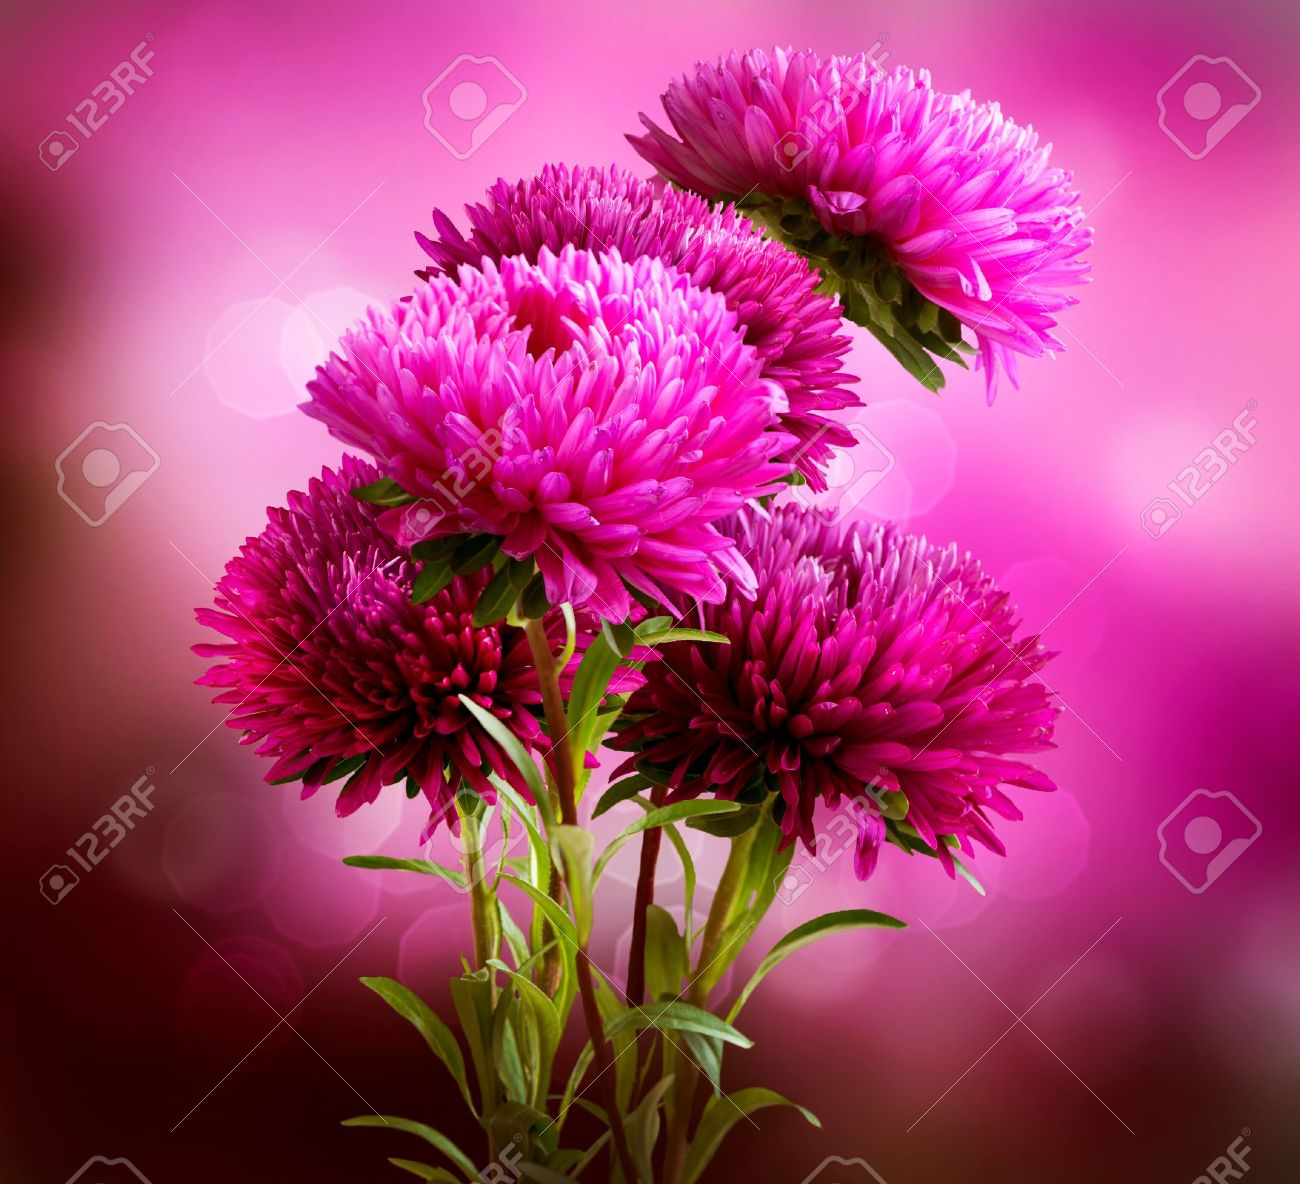 aster flower stock photos images. royalty free aster flower images, Beautiful flower